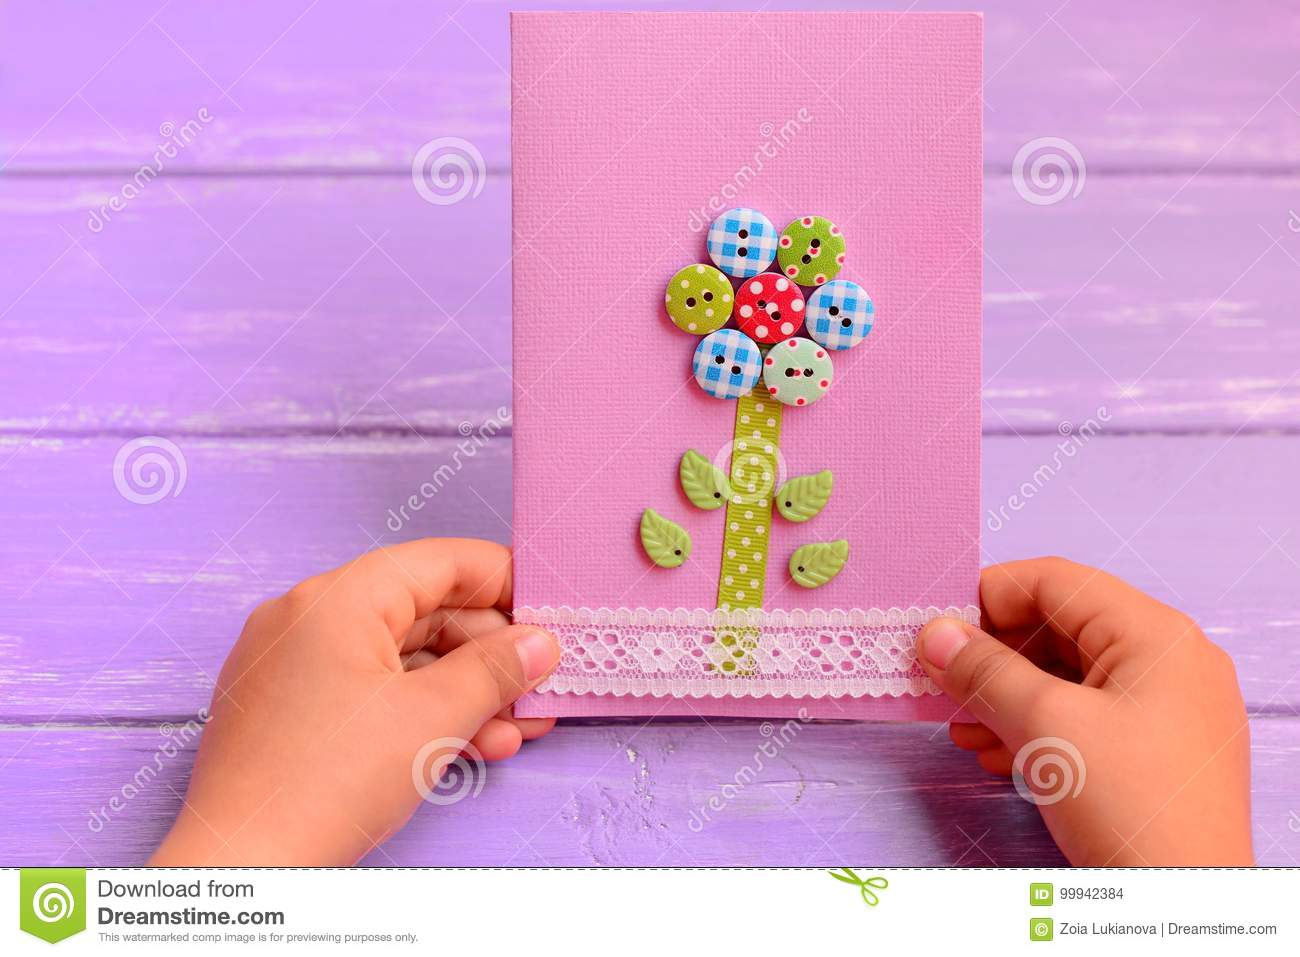 Mothers Day Cards Ideas For Preschool Handmade Easy Card Design Mom Birthday